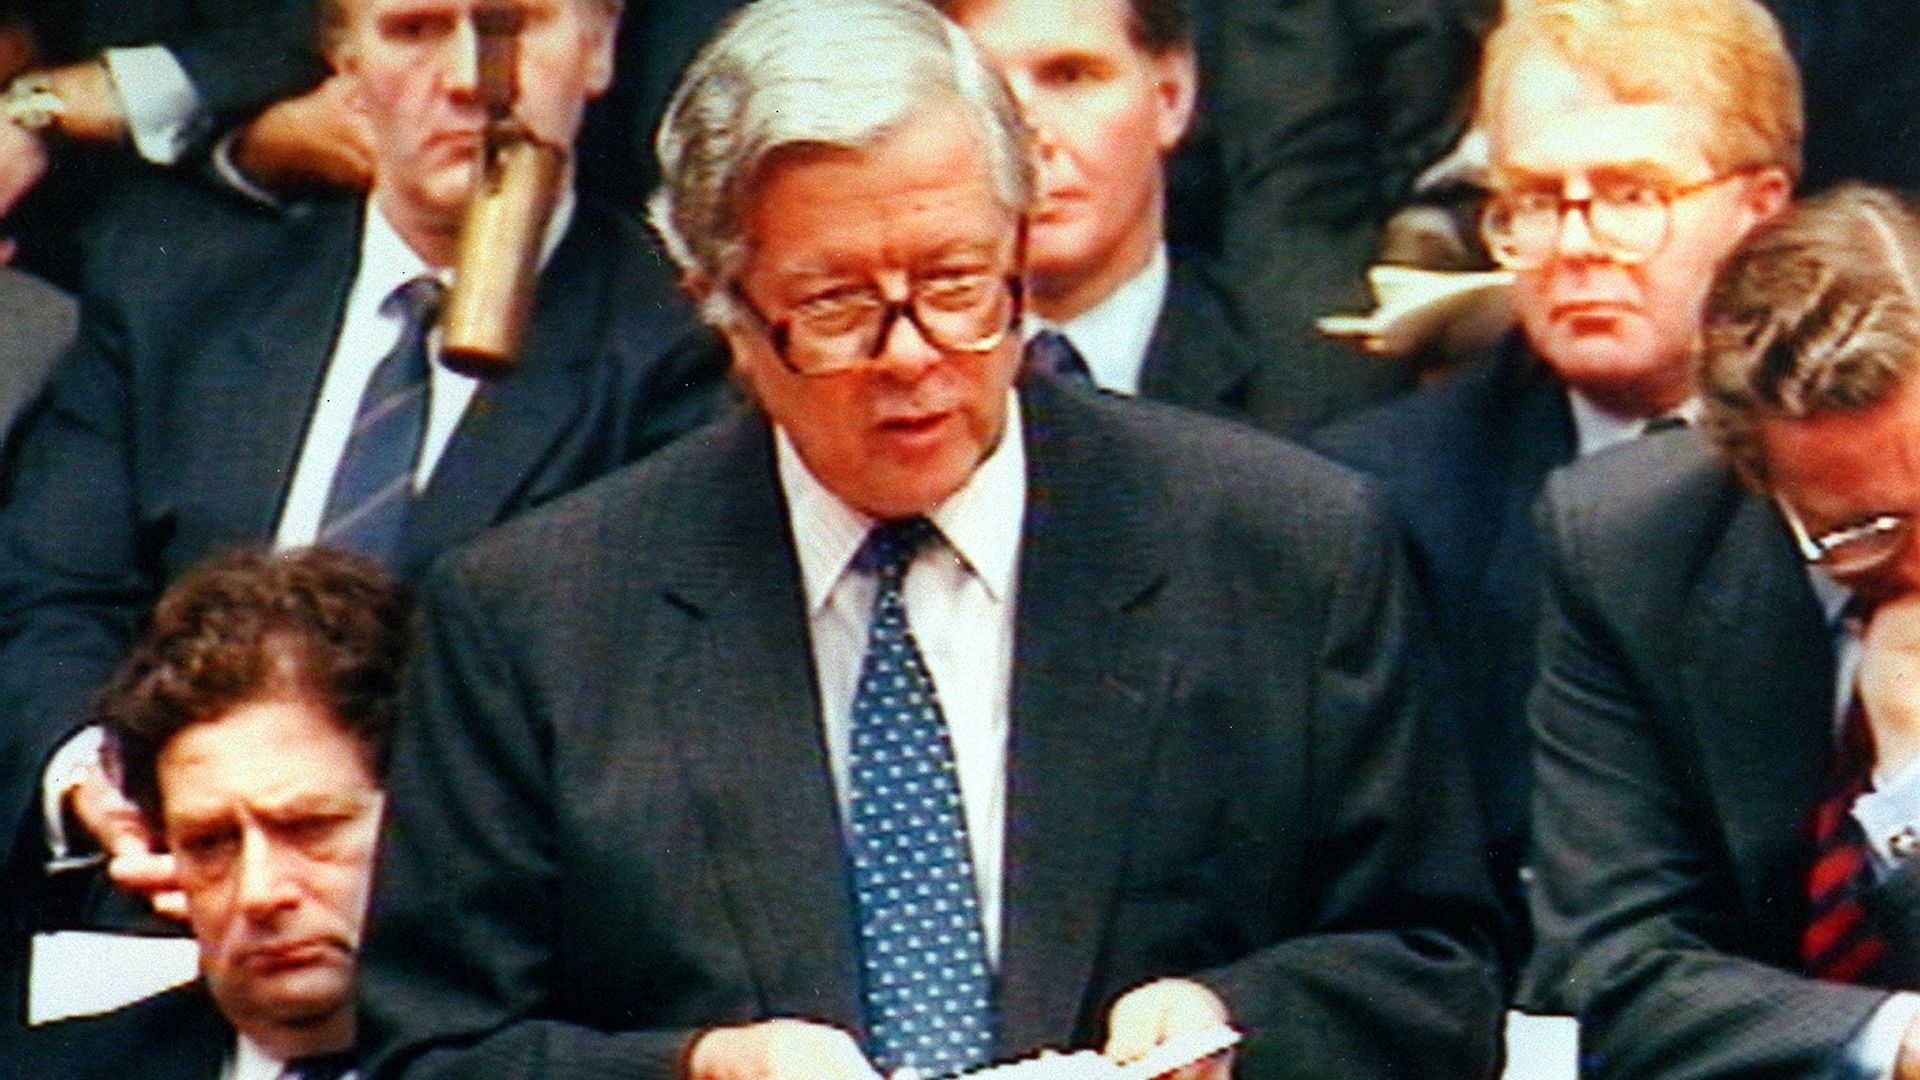 PA Photo 13/11/1990  Sir Geoffrey Howe speaking at the House of Commons in London - Credit: PA